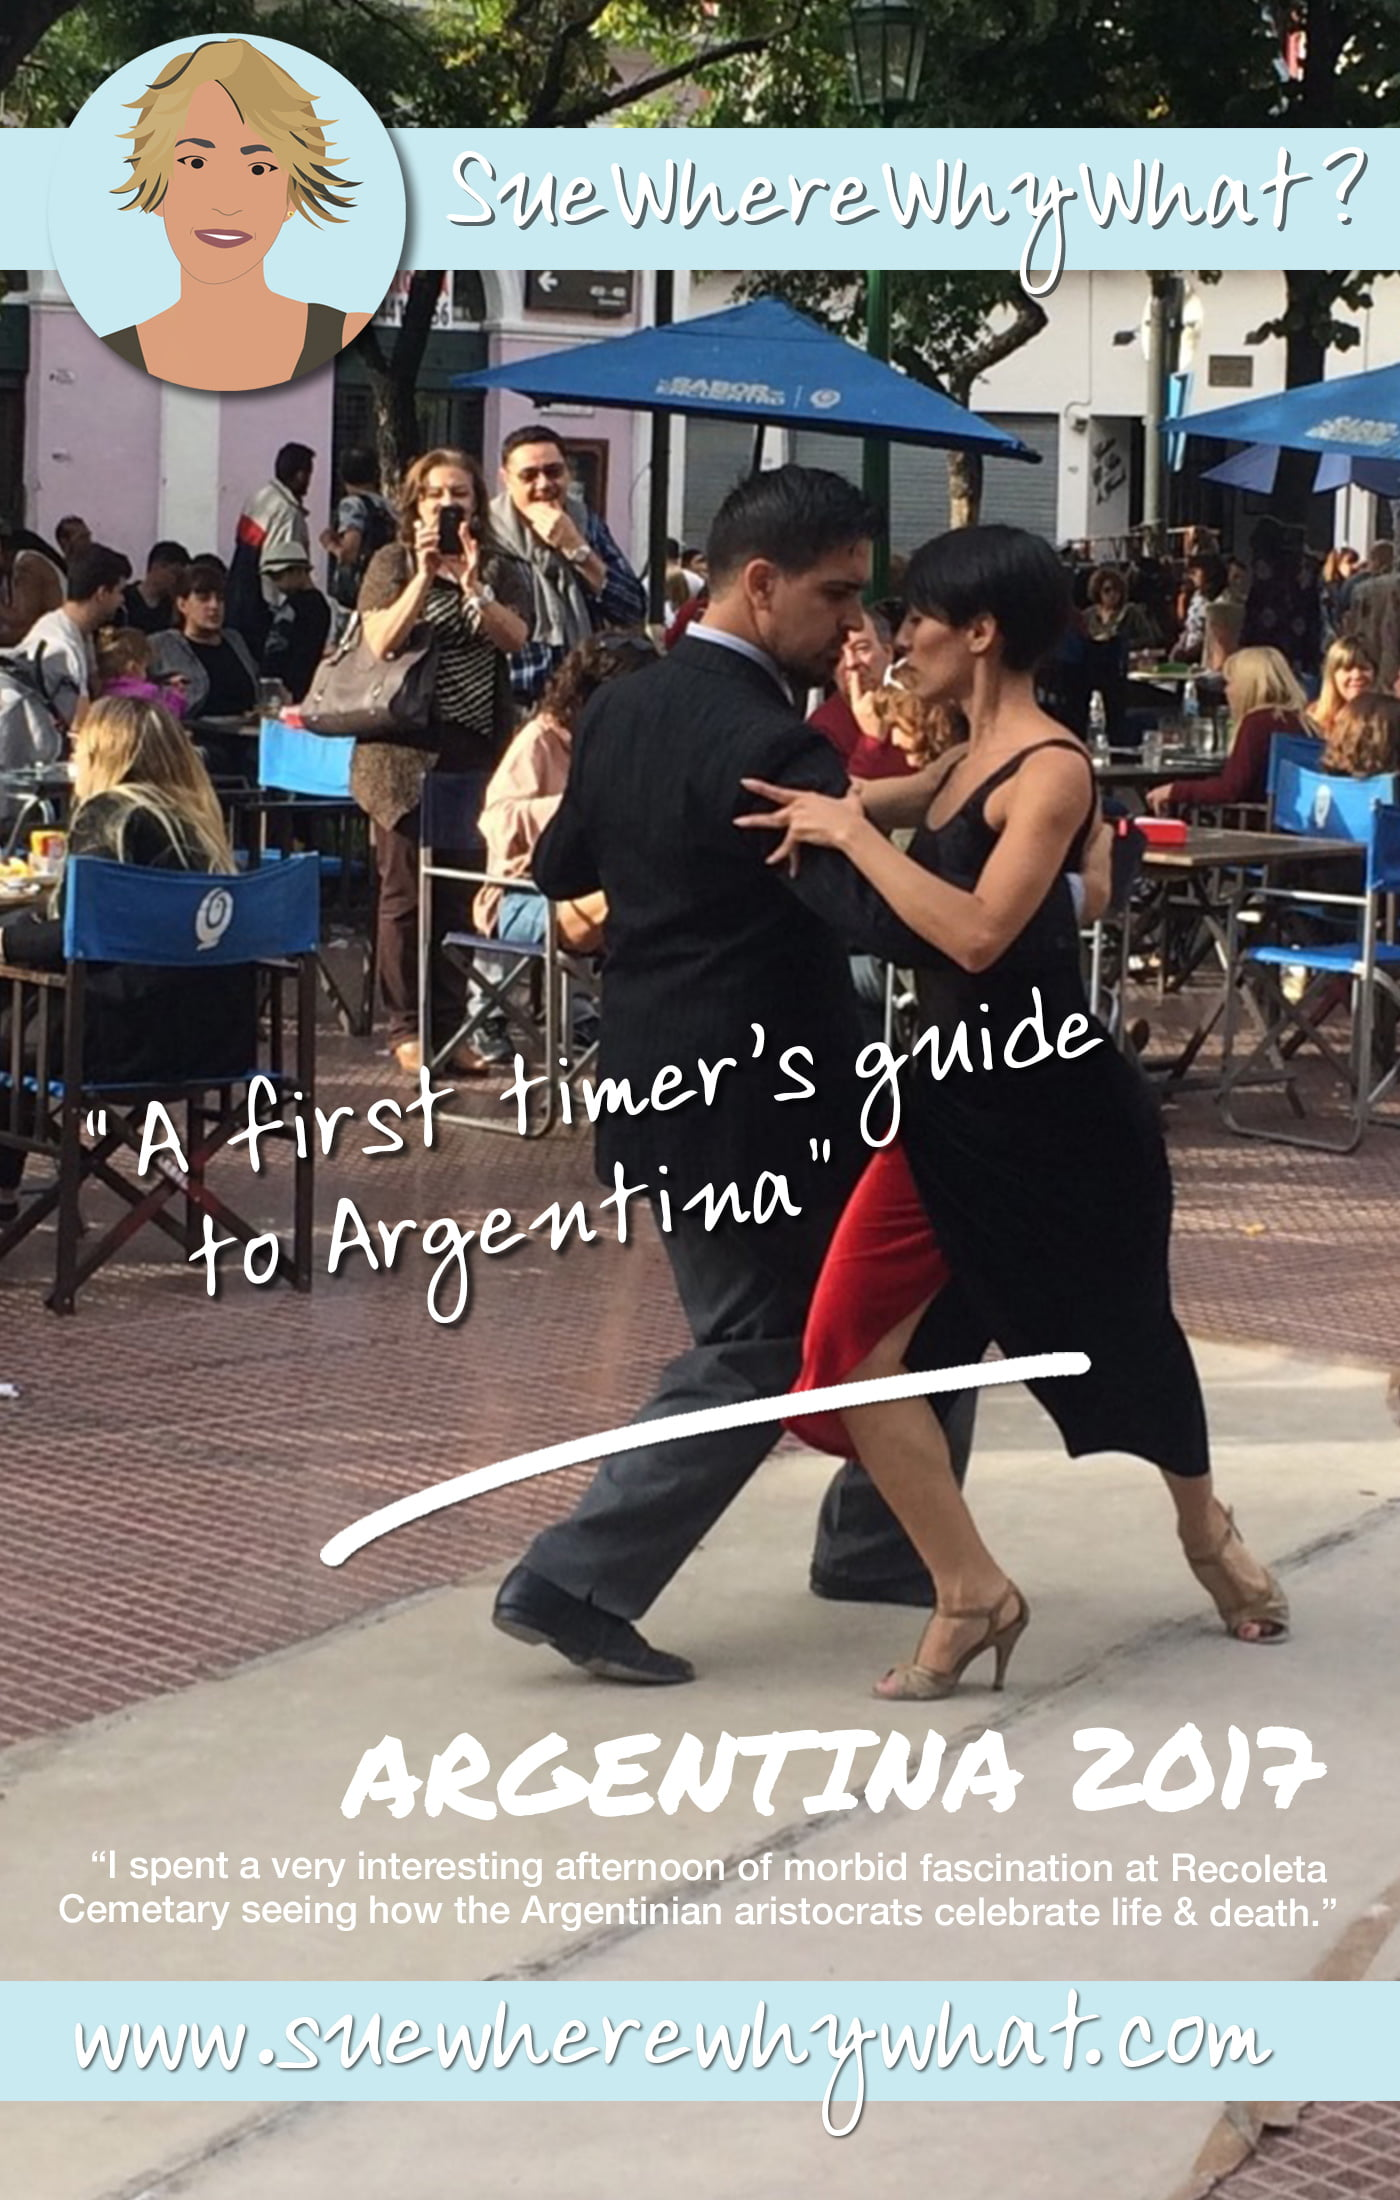 A First Timer\'s Guide to Argentina. Includes Buenos Aires for the city & culture, El Calafate for the mountains & glaciers, Mendoza for the wine and Iguazu Falls for the Waterfalls.  